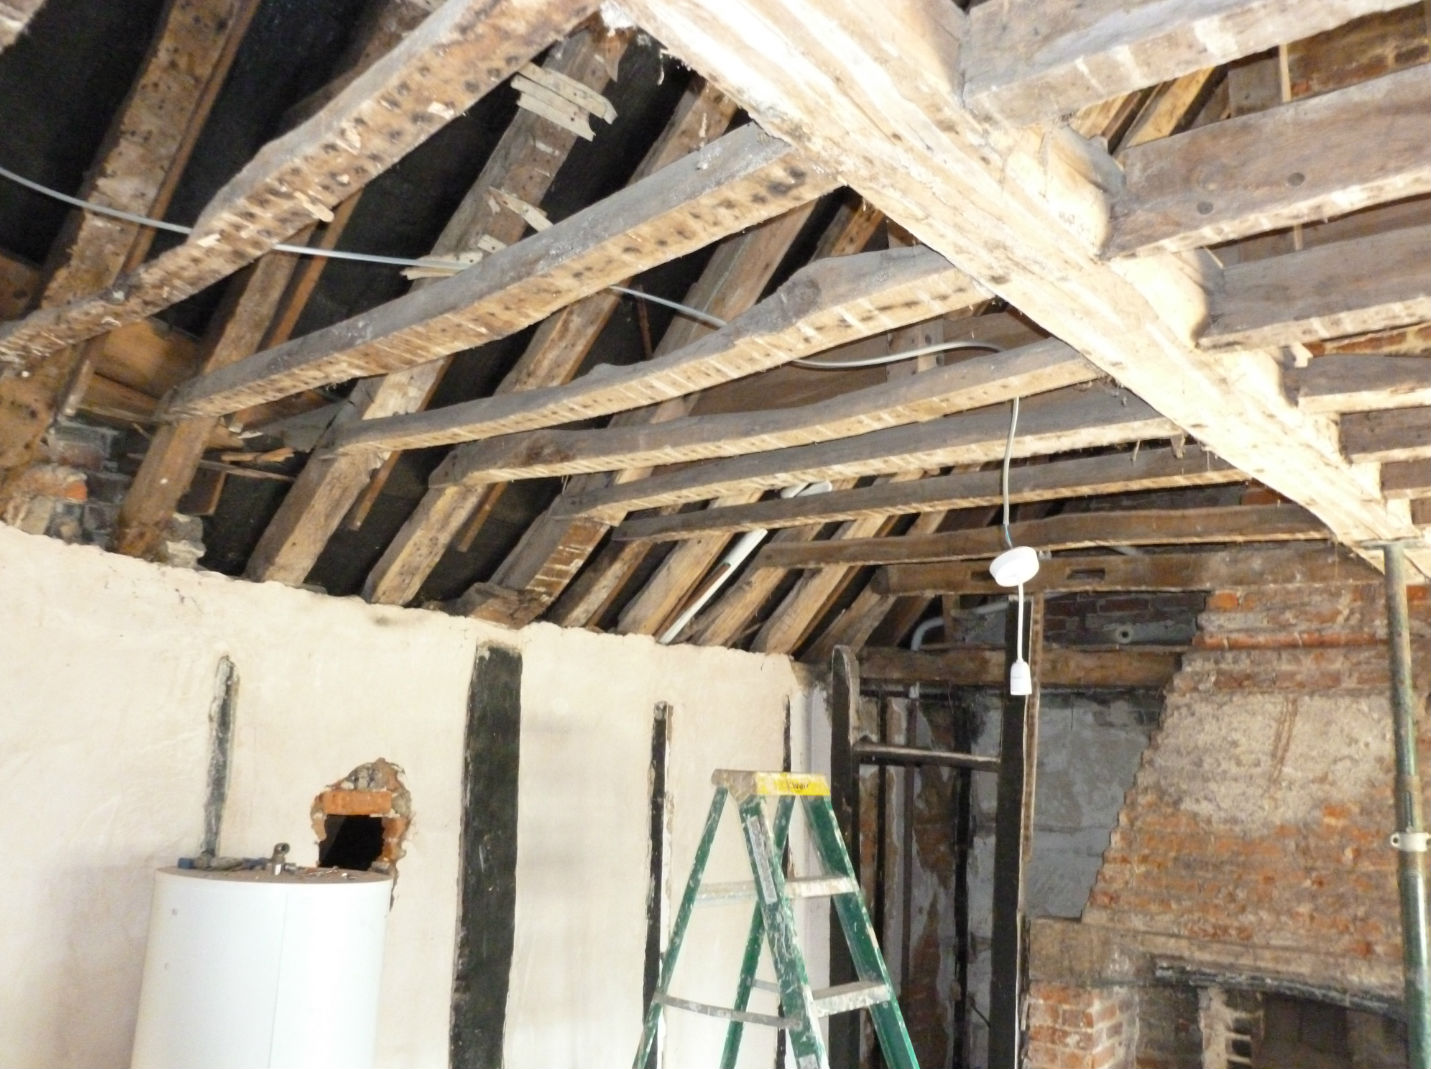 Private Residence, Buckinghamshire - Timber Rafters - Before